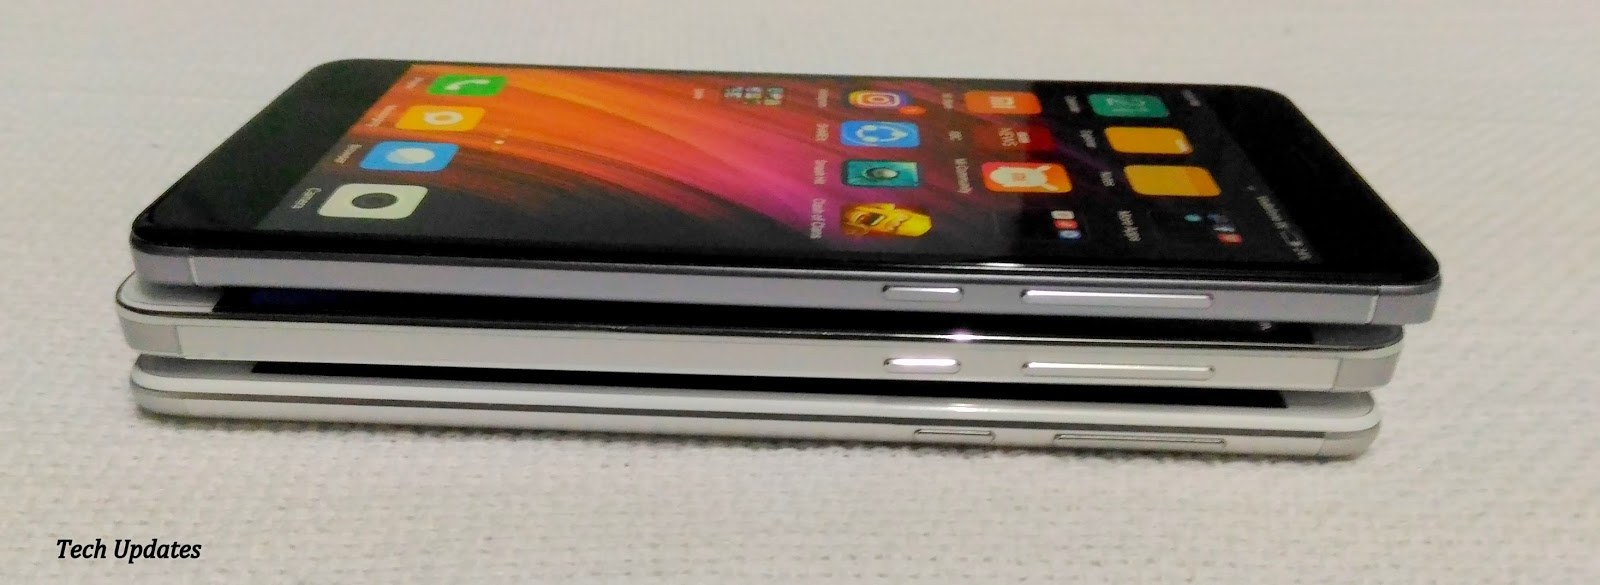 Xiaomi Redmi Note 4 vs Coolpad Cool 1 vs Honor 6X - Tech Updates